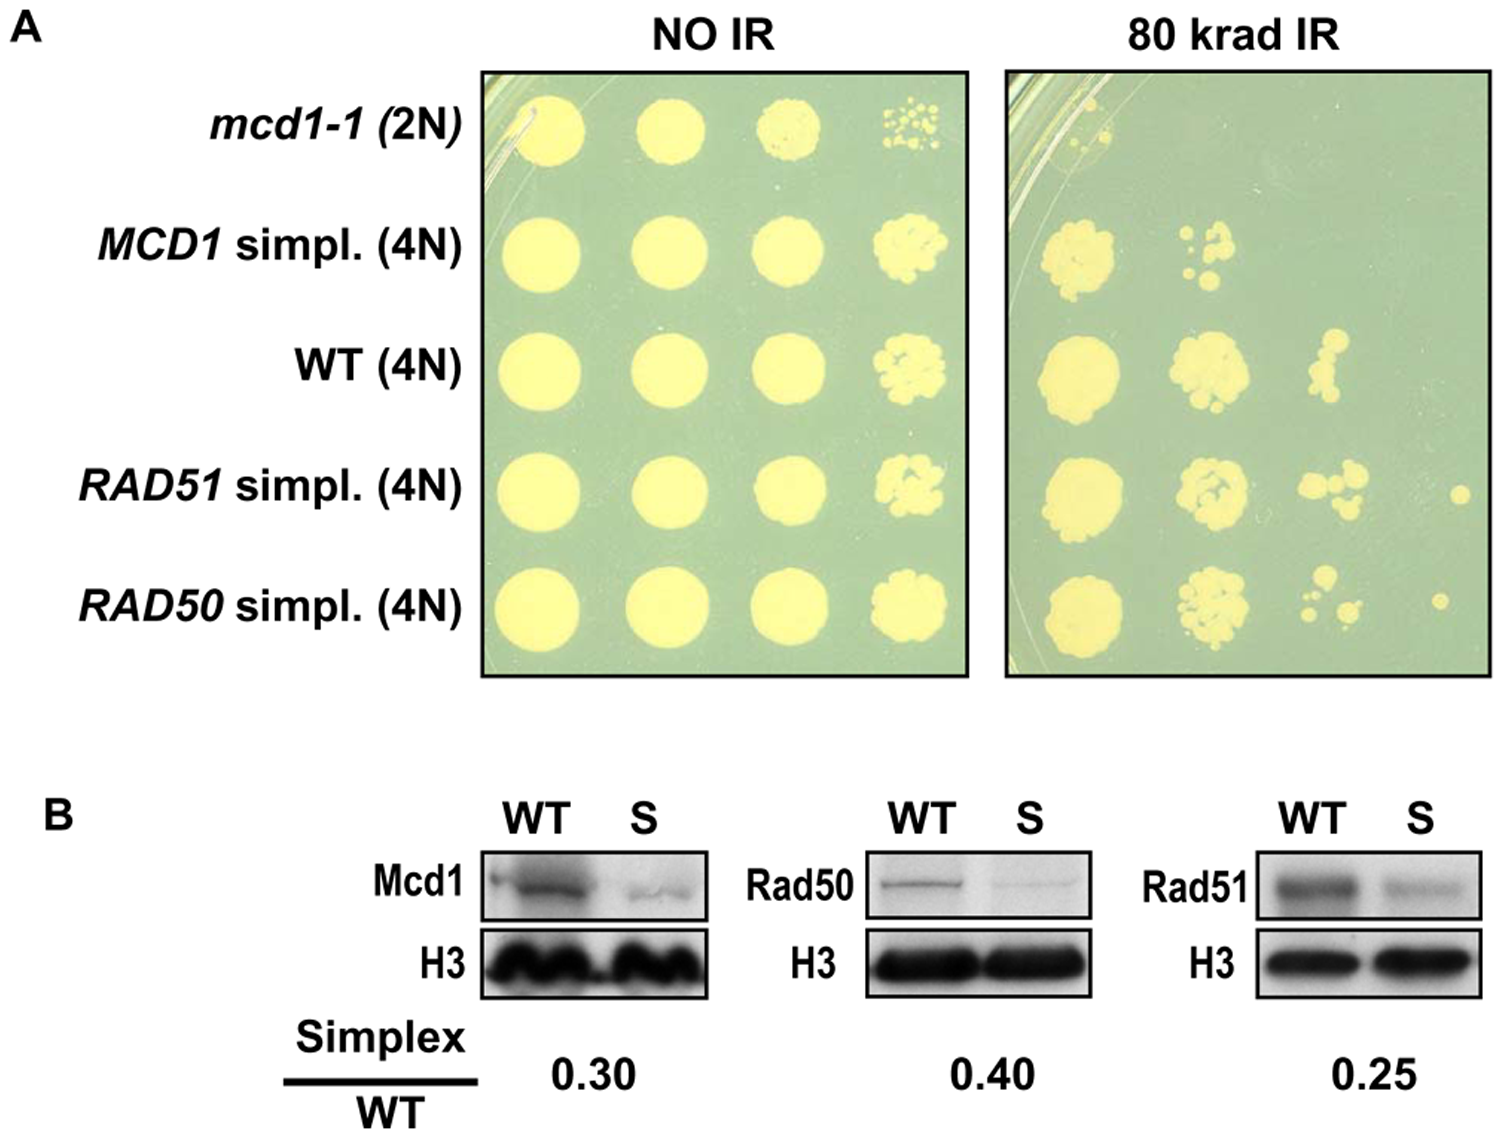 Cells that are simplex for <i>MCD1</i>, but not <i>RAD50</i> or <i>RAD51</i>, are sensitive to ionizing radiation.